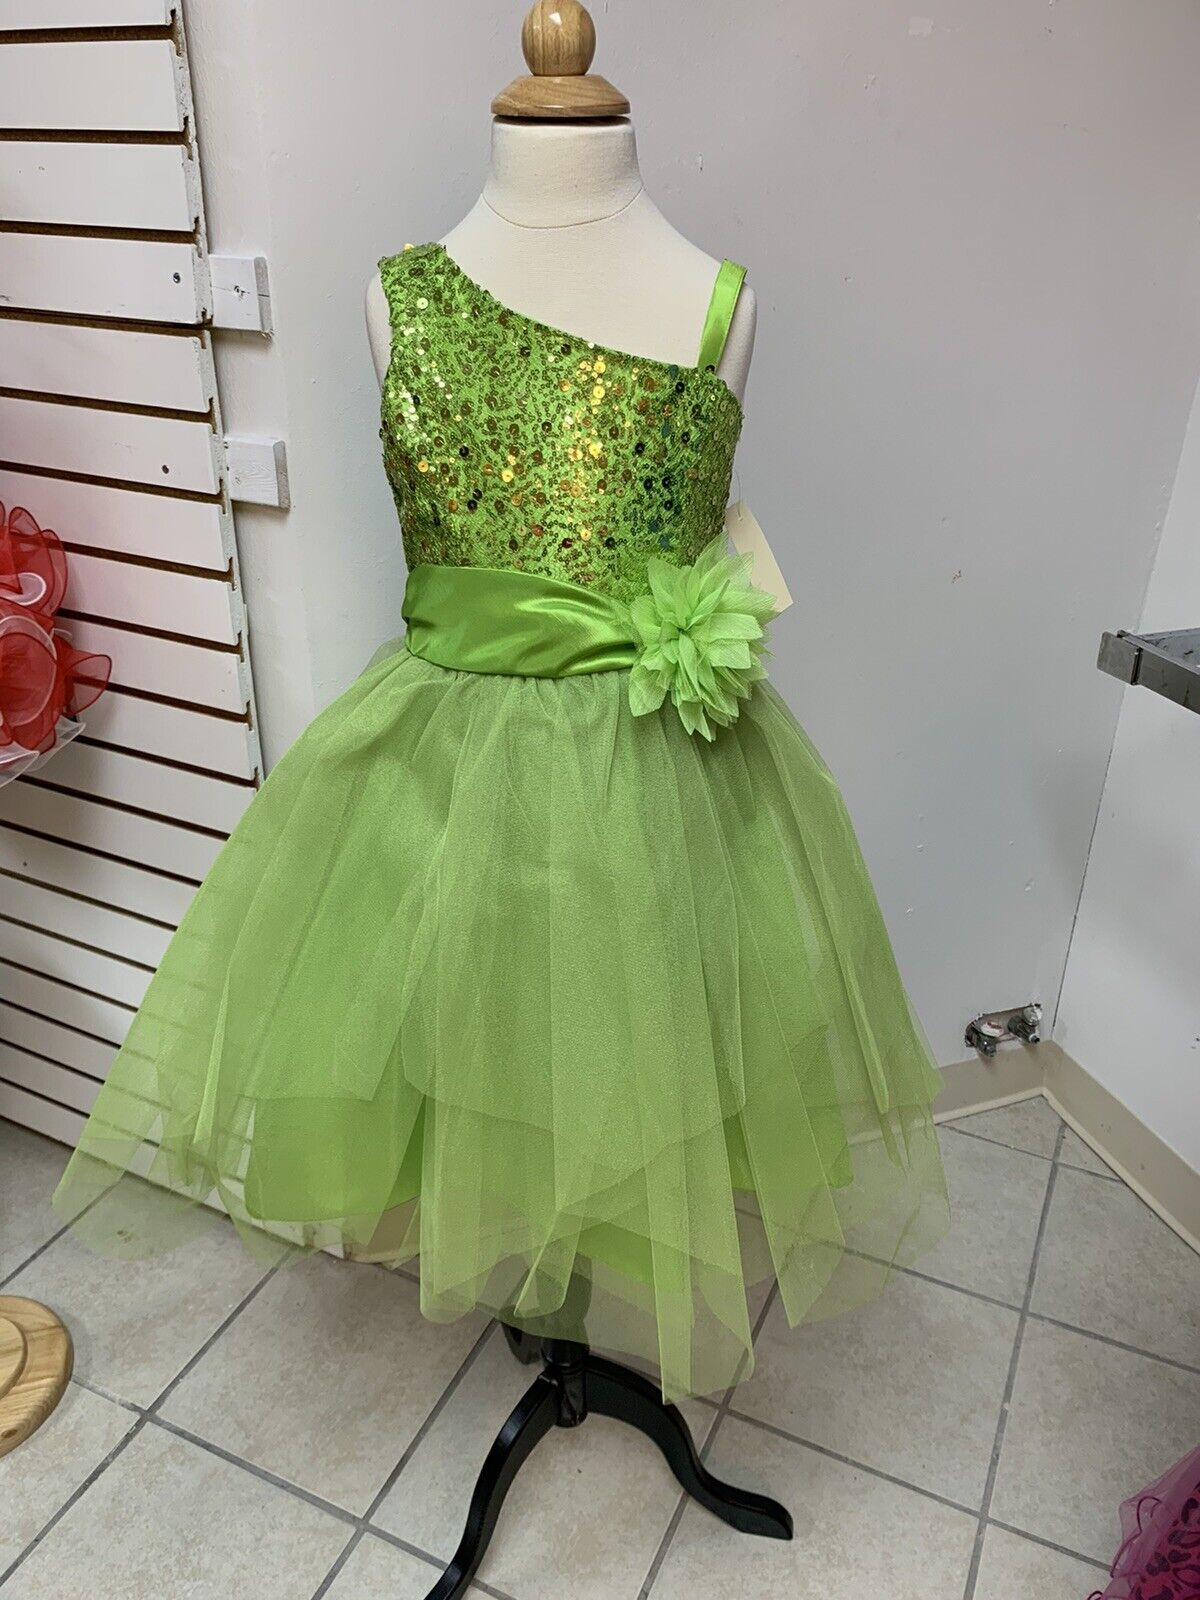 8 Easter Pageant Crowning Flowergirl Special Occasion Formal Dance Dress NWT